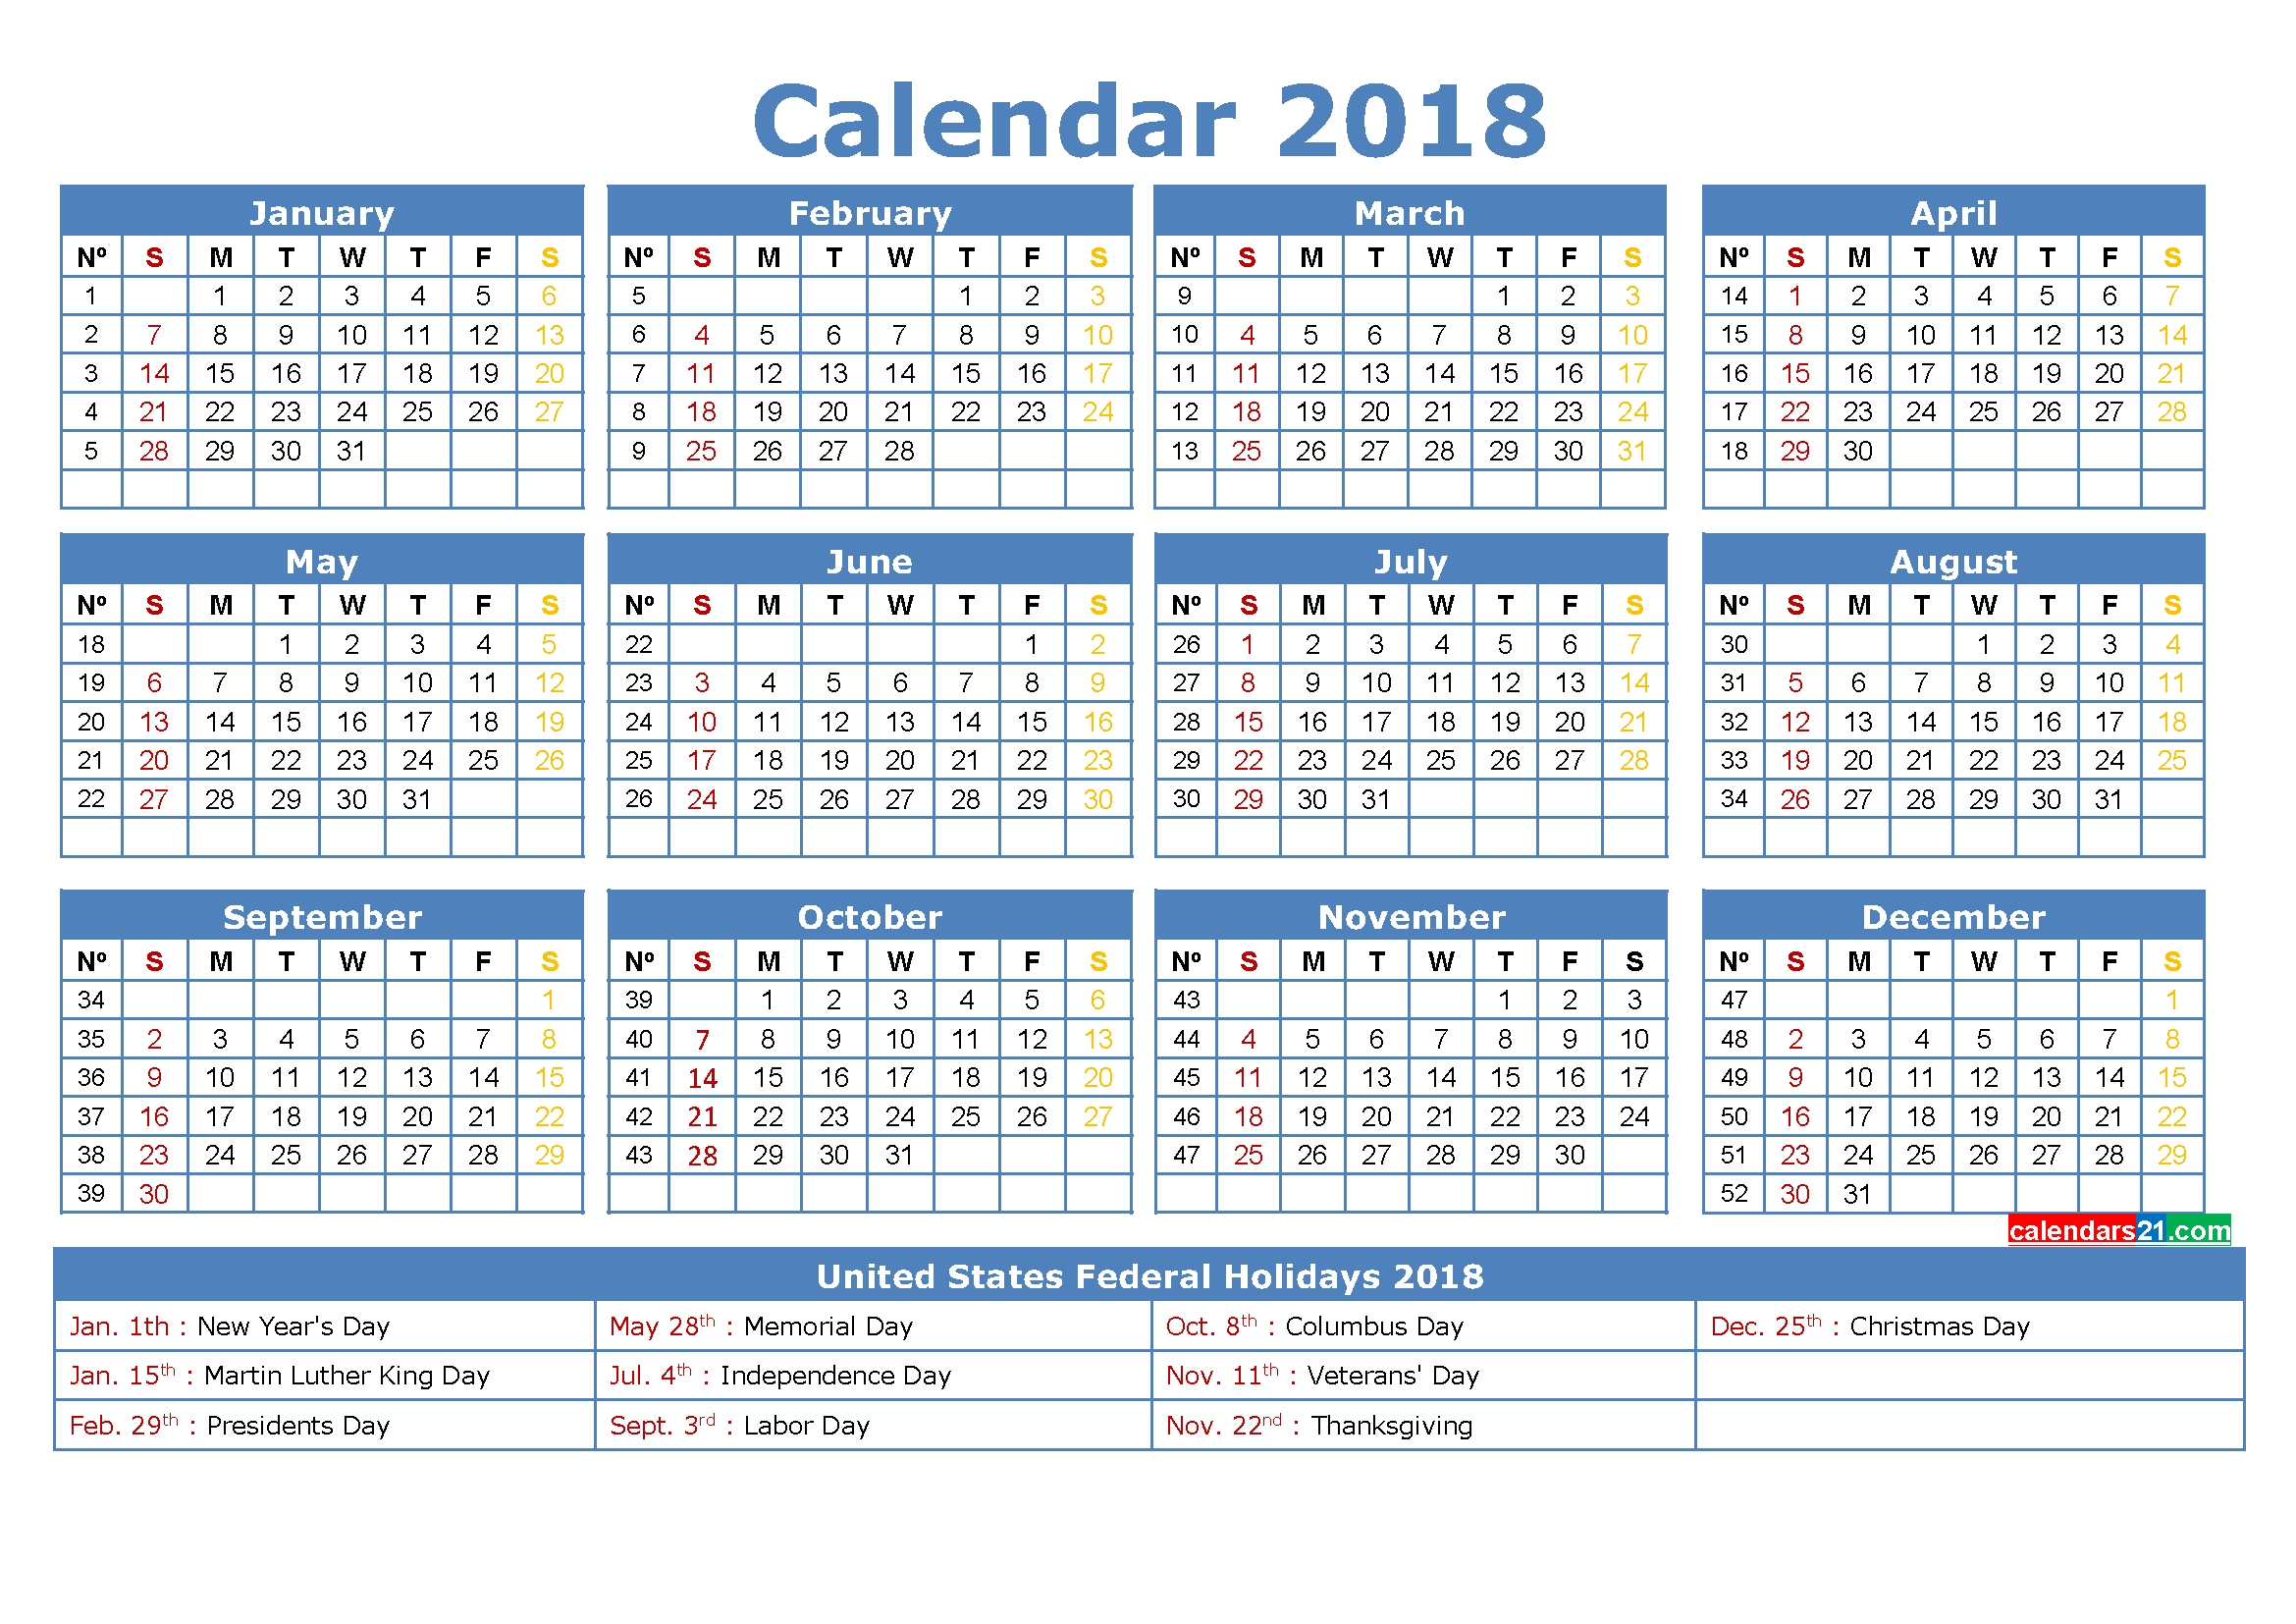 12 Month Calendar 2018 Printable With Holidays In Us. | 2018 2019  1 Week Vacation Calendar Printable